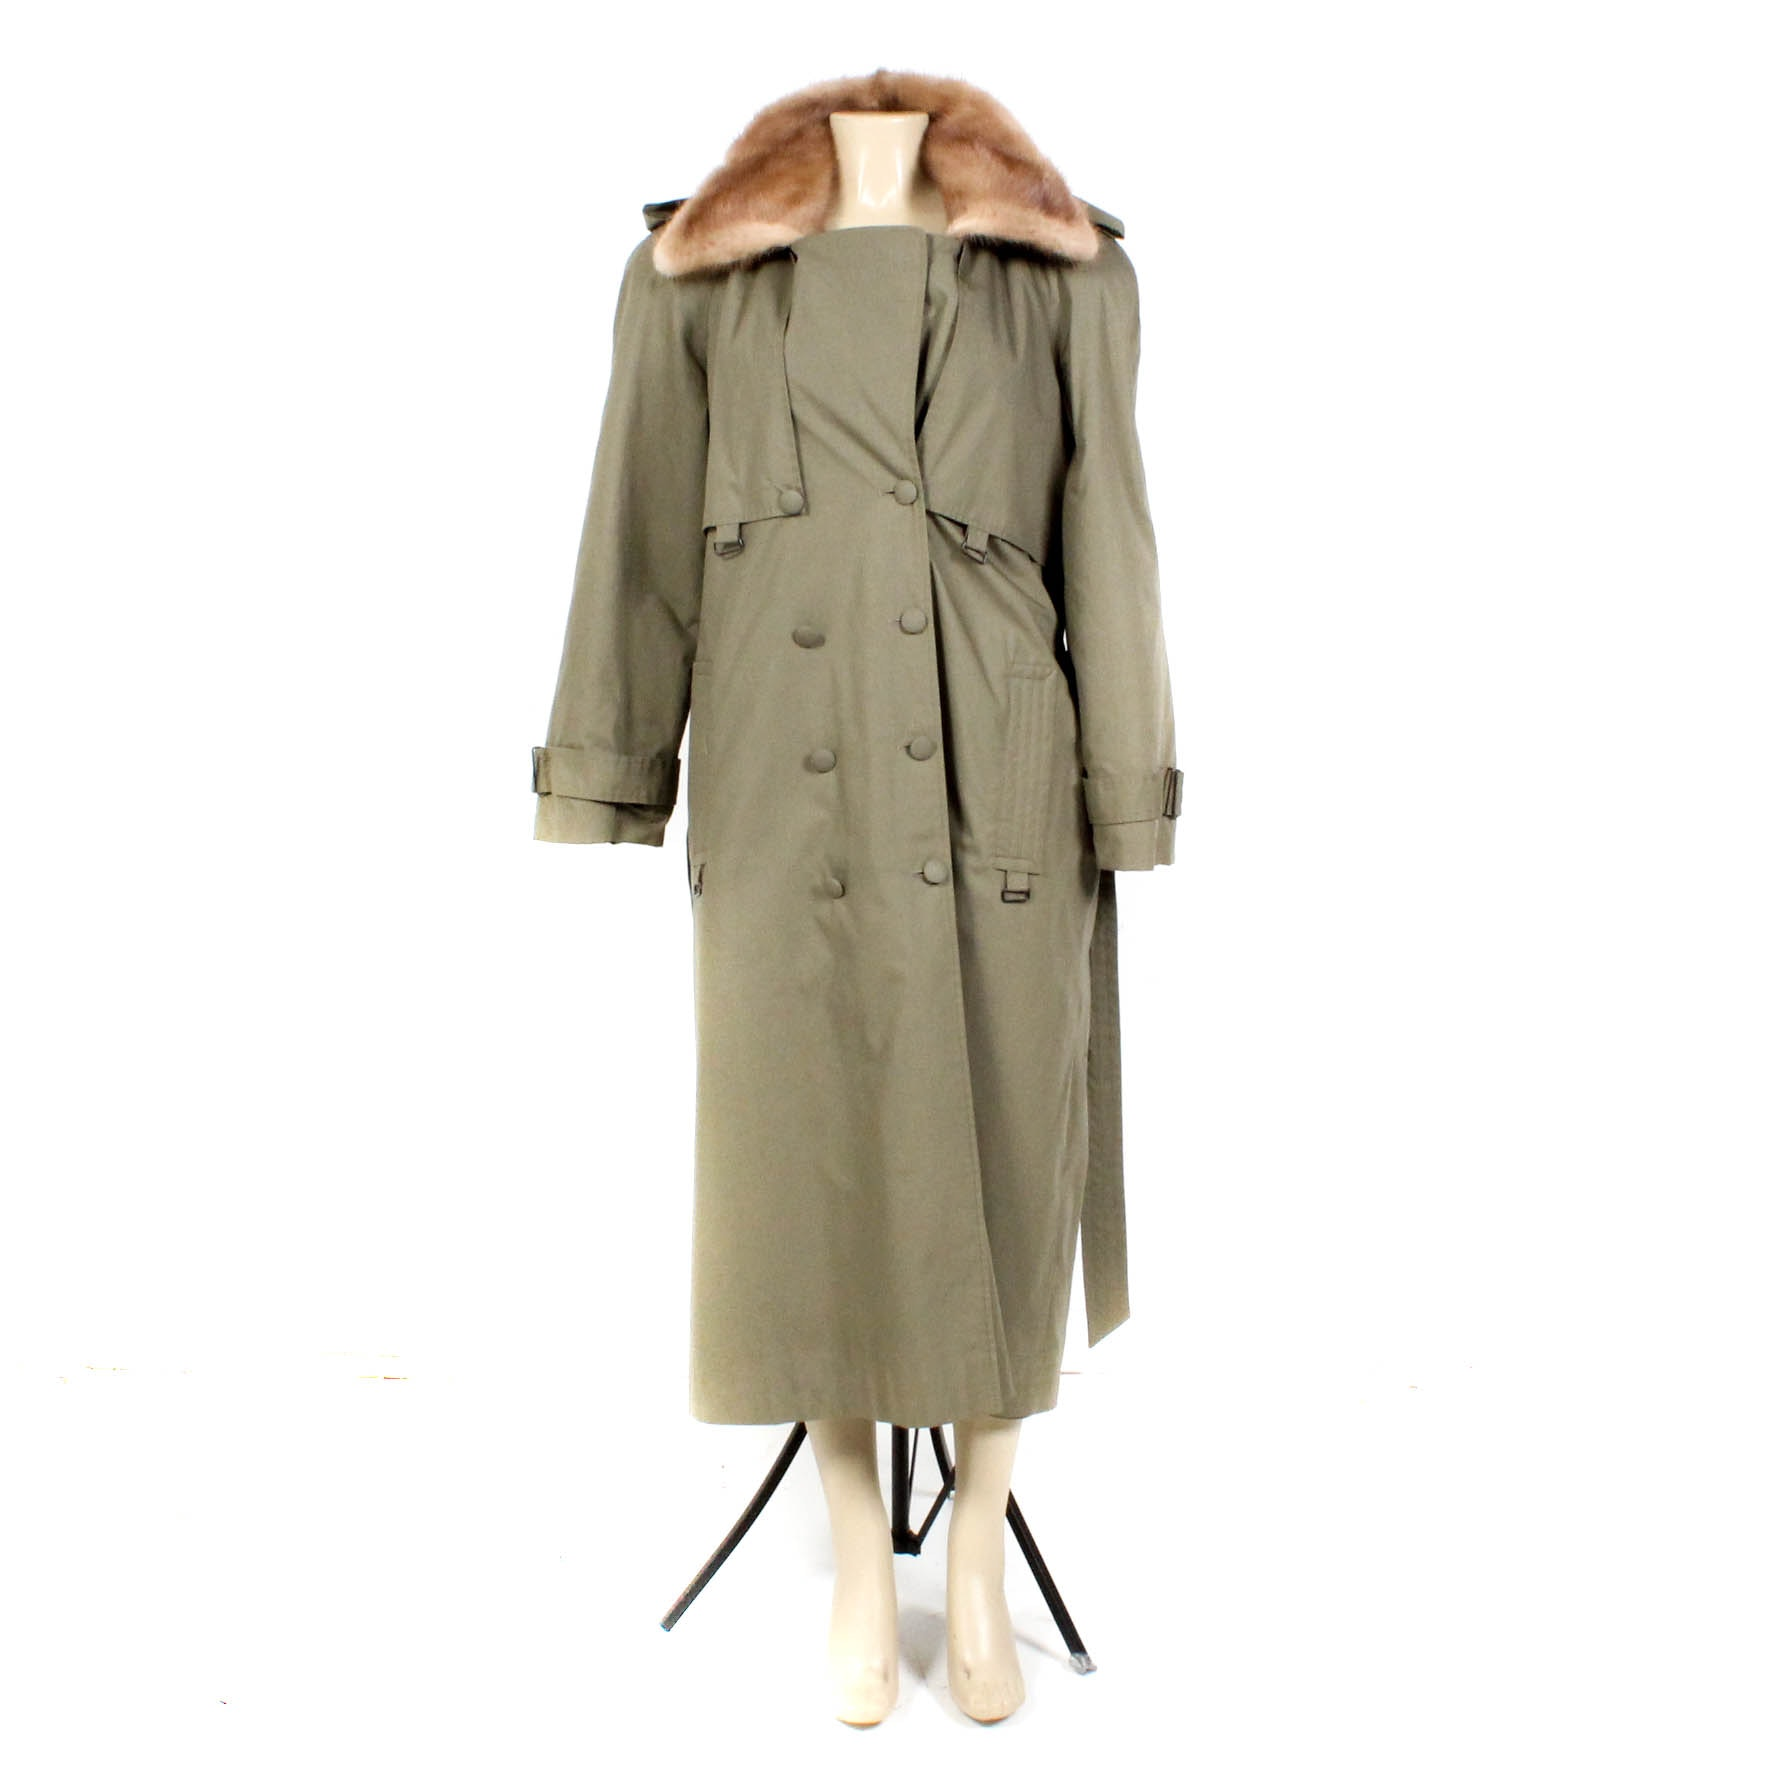 Mink Fur Lined Raincoat